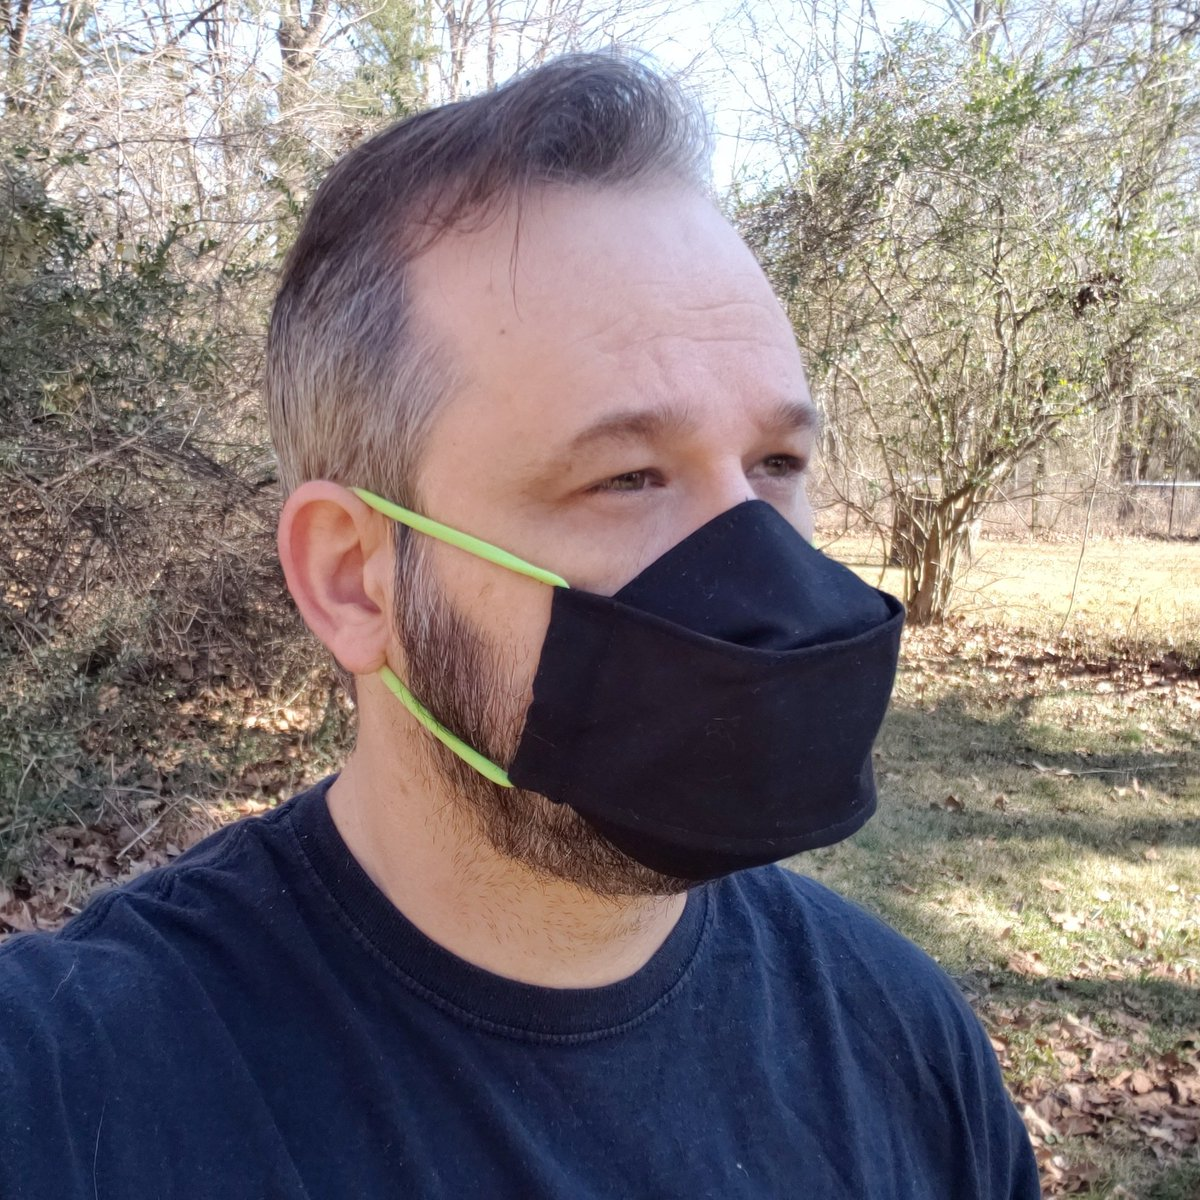 Comfort cup masks. Do not touch mouth or lips. Comfortable for daily wear, easy breathability. Do your part #MaskUp  #100DAYMASKCHALLENGE  #COVID19  #Biden